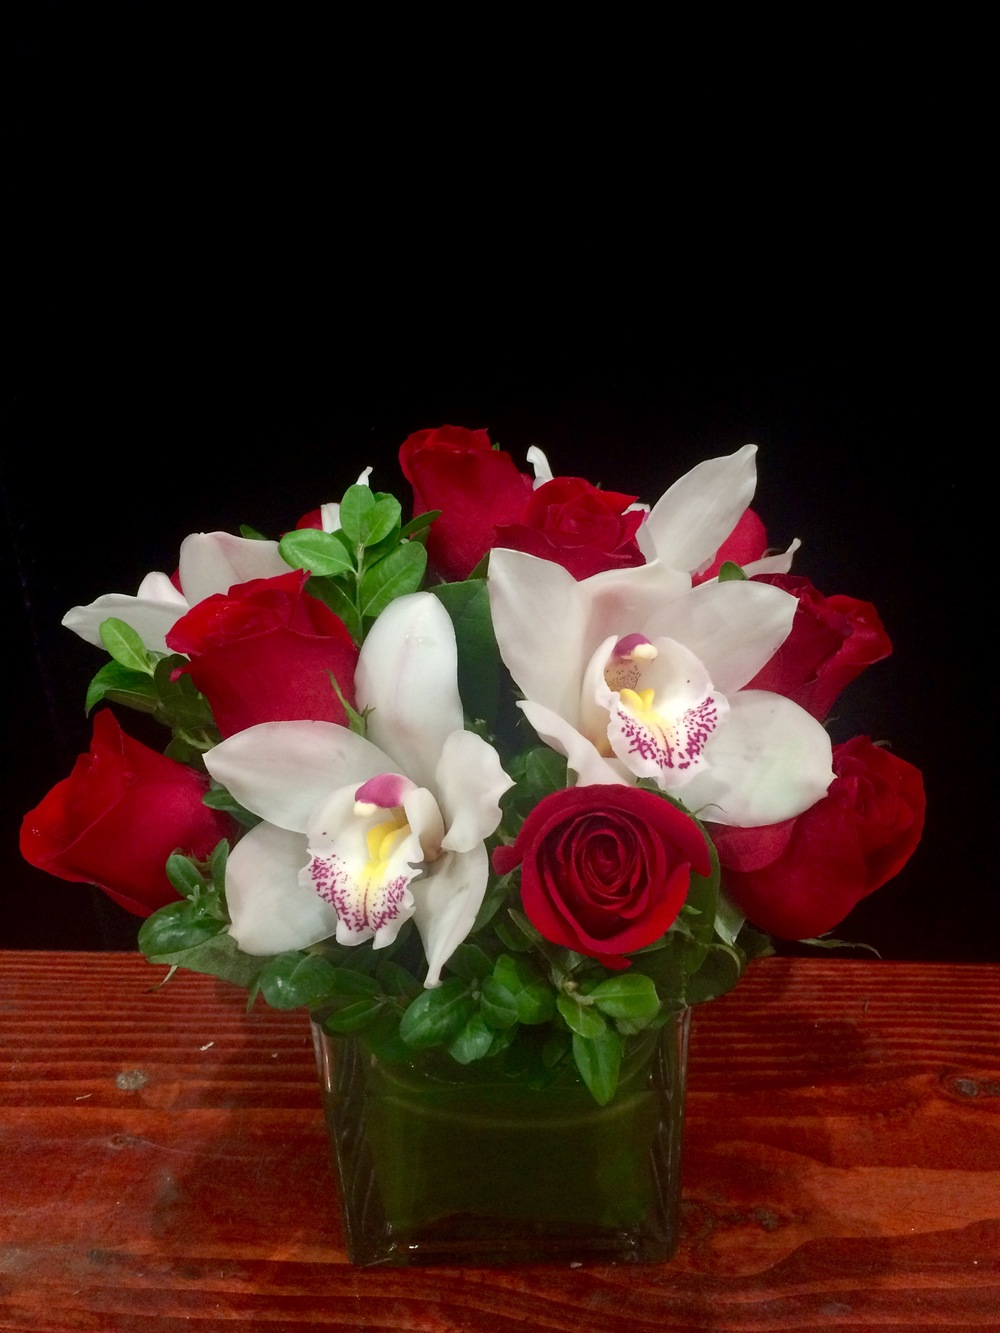 A Dozen Red Roses with White Cymbidium Orchids